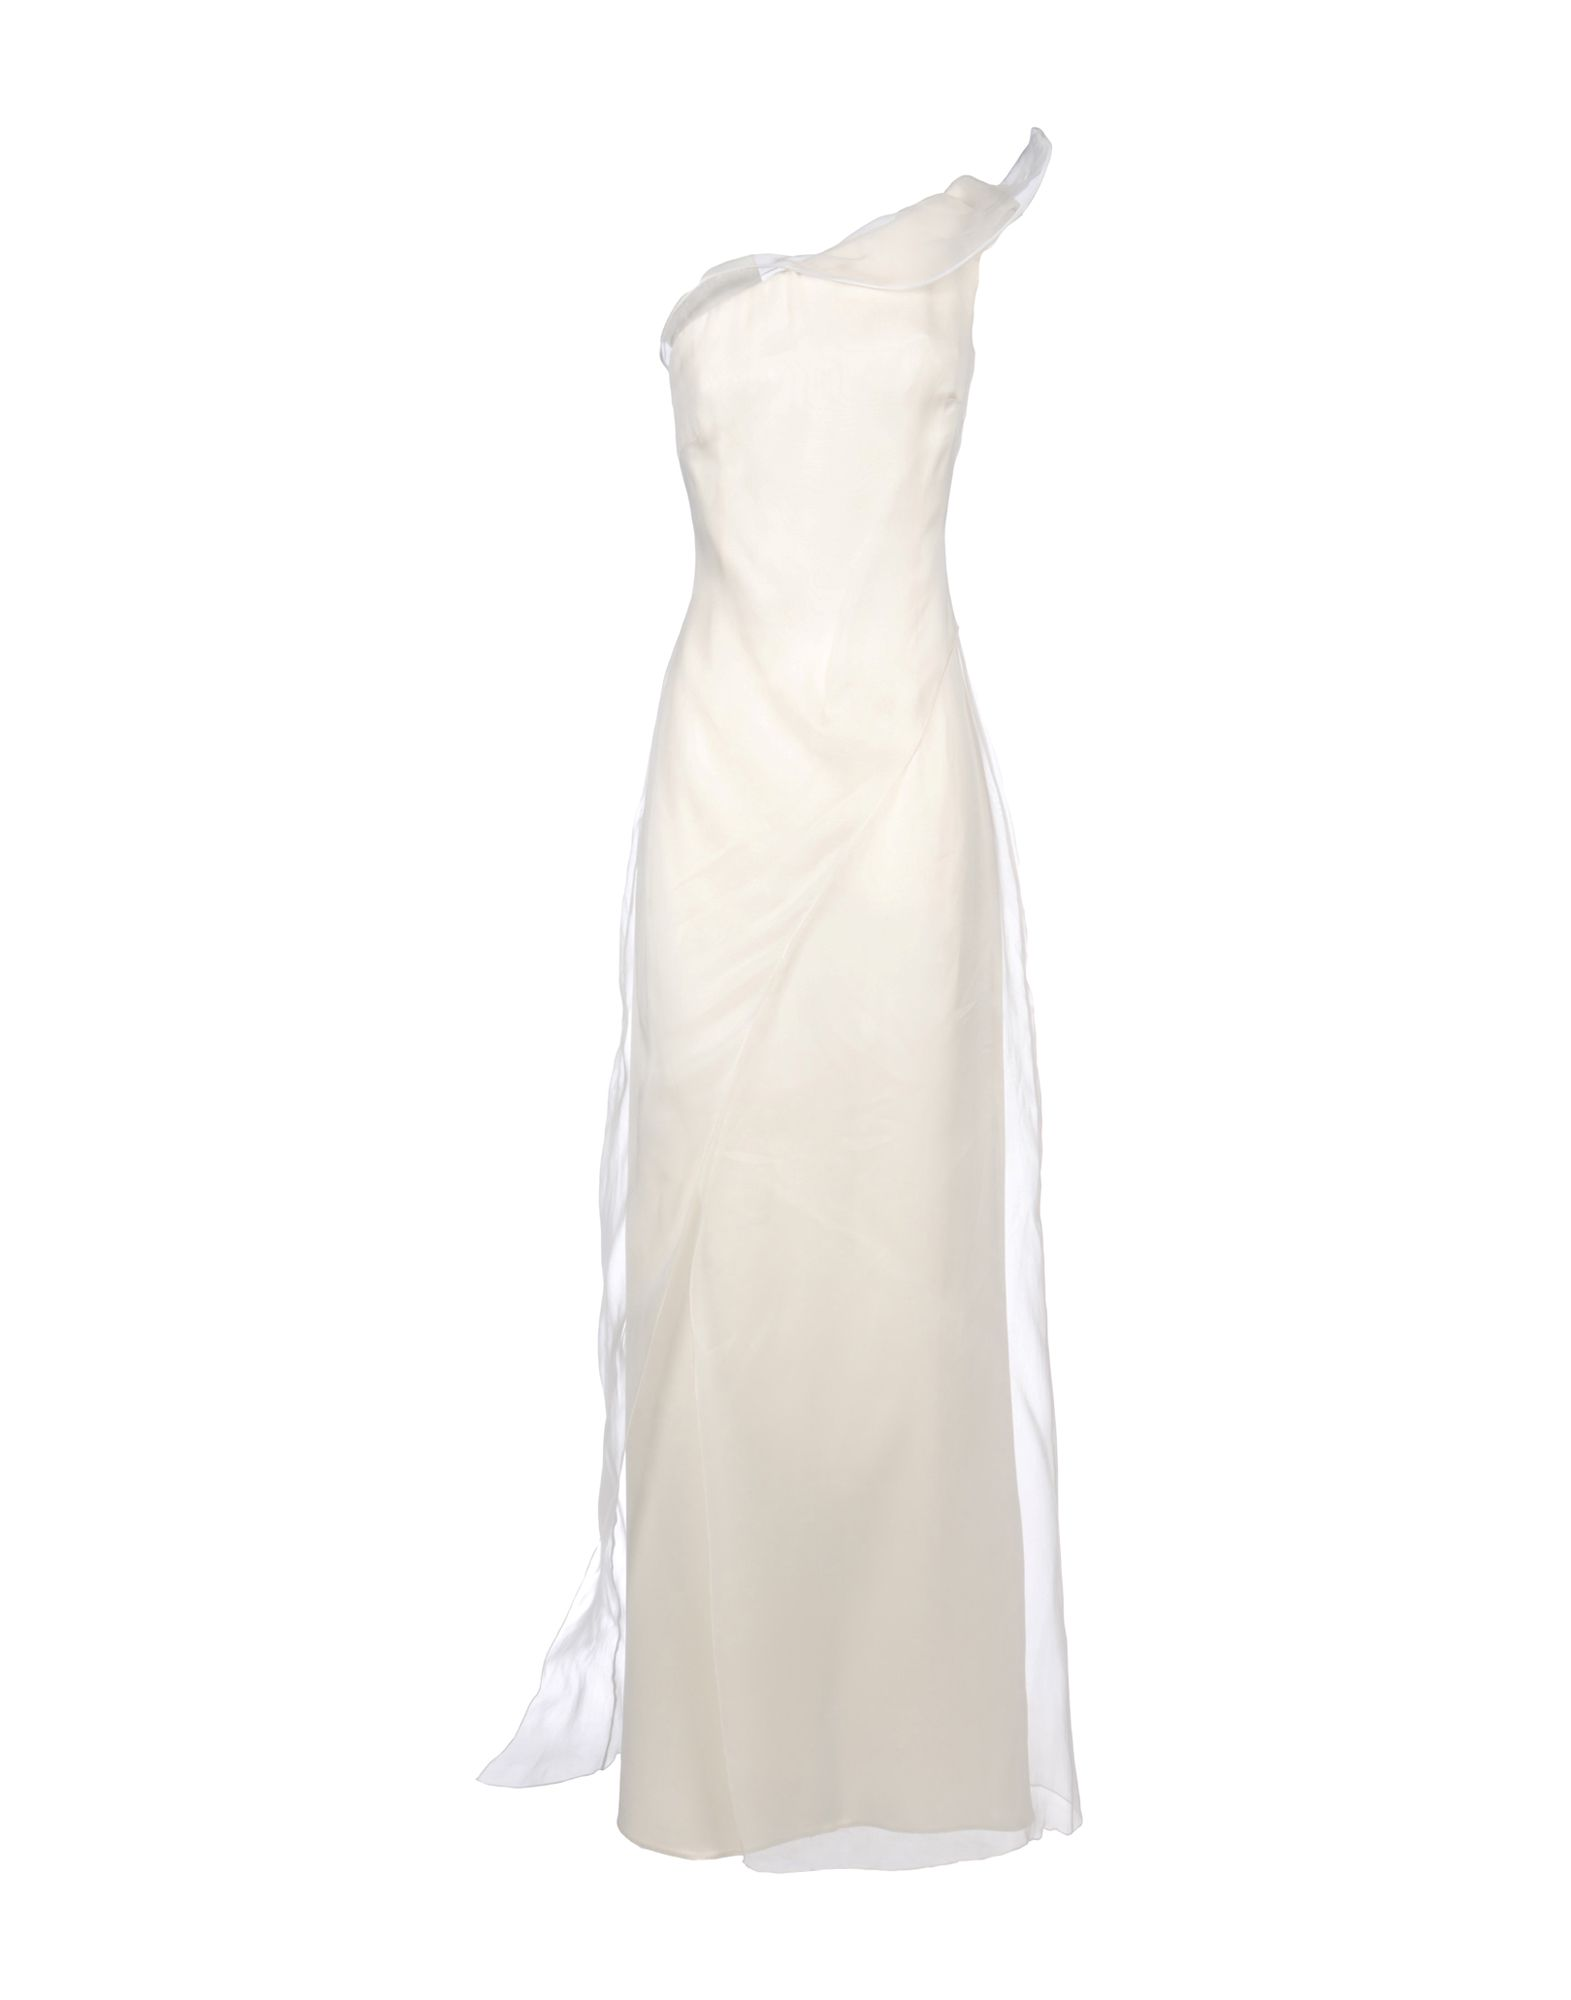 GIORGIO ARMANI Long dresses. satin, organza, basic solid color, deep neckline, sleeveless, no appliqués, no pockets, lined interior, side closure, zip closure, dress, large sized. 100% Silk